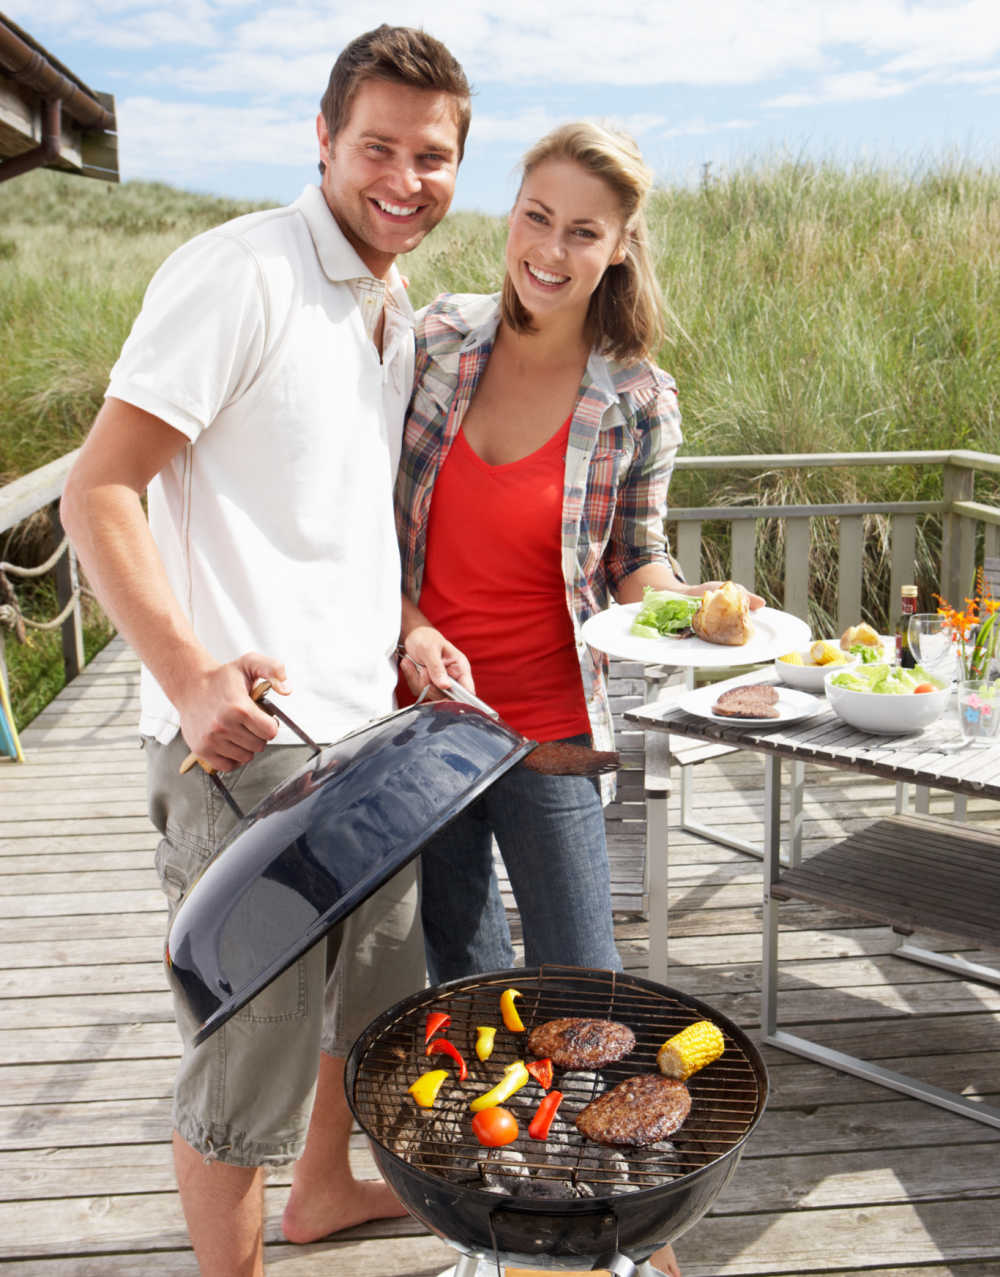 Man and woman with food at a BBQ party.